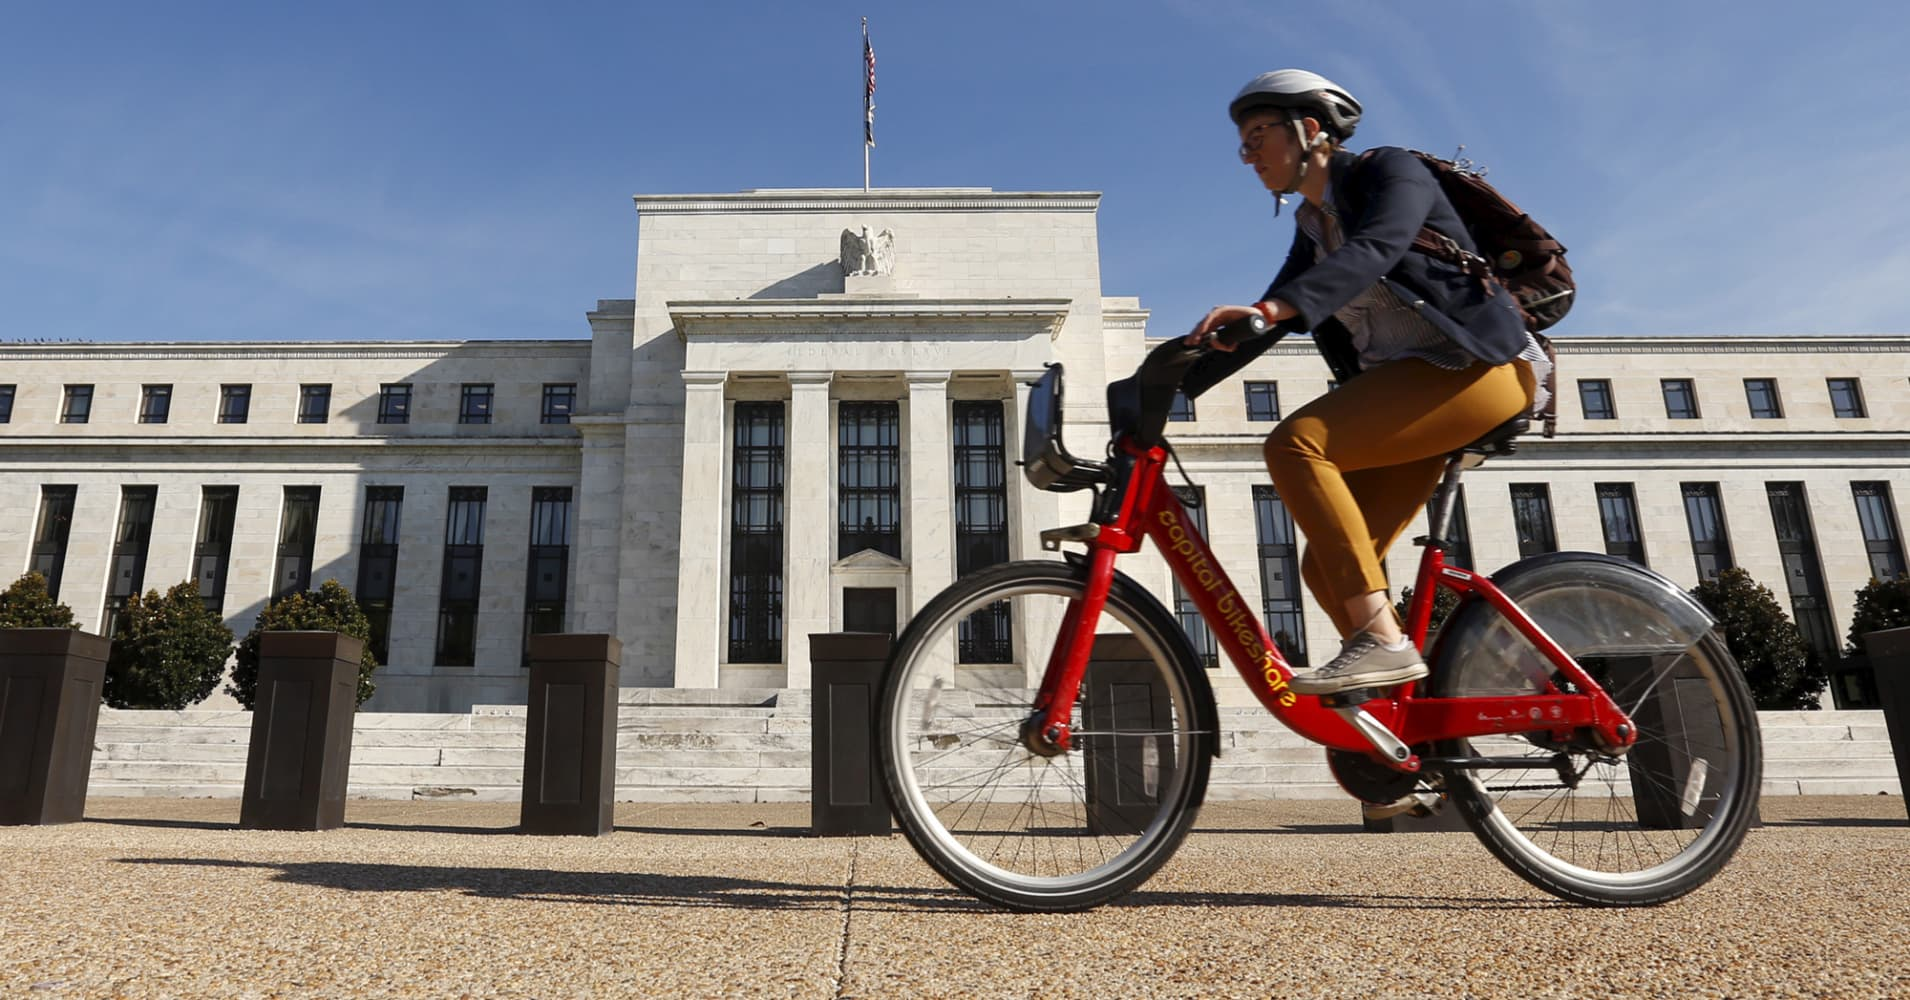 The Fed is about to make a major policy change. Here's how it works